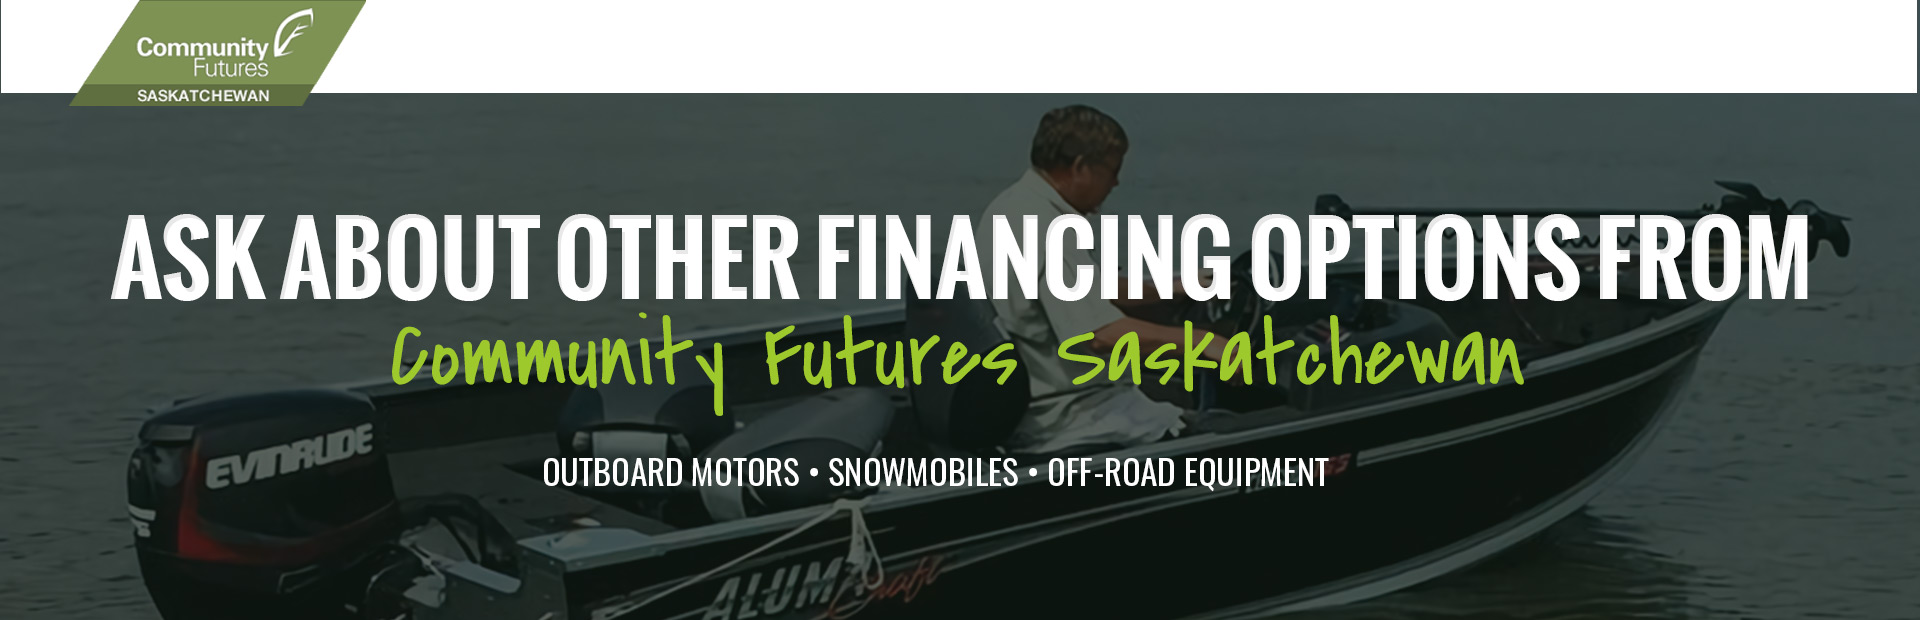 We're offering financing options from Community Futures Saskatchewan. Click here for more informatio